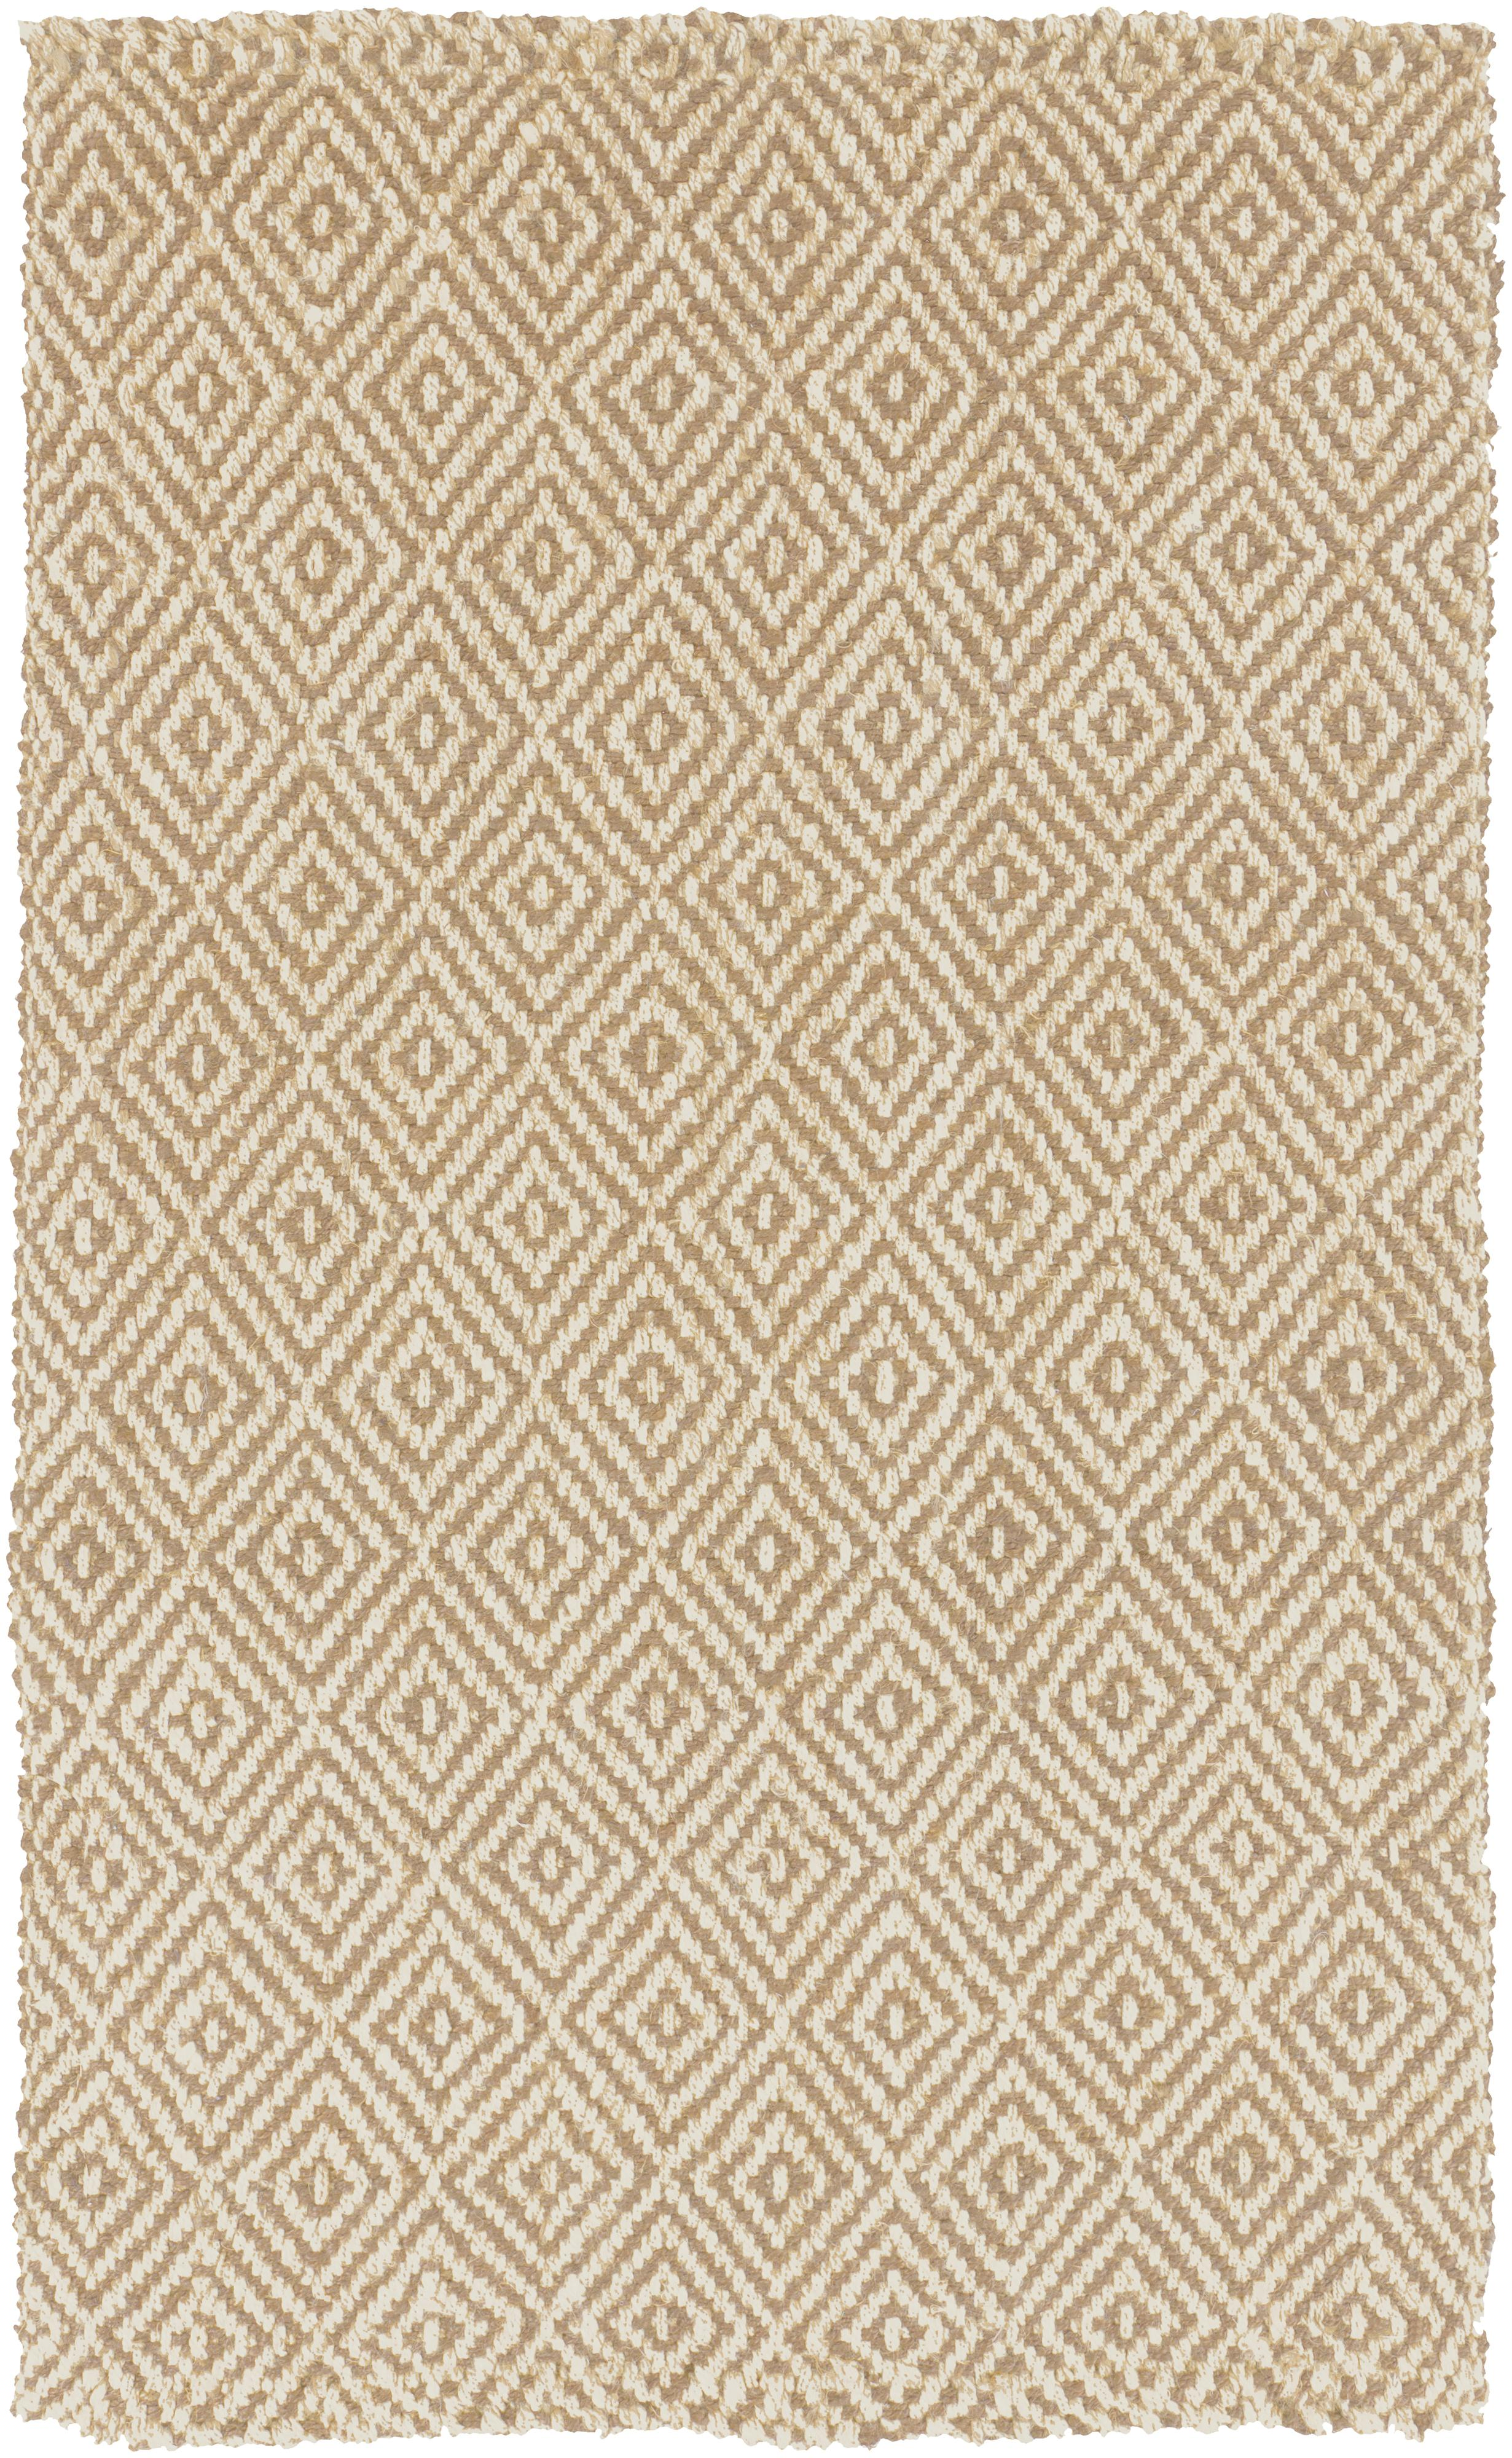 Reeds 5' x 8' by Ruby-Gordon Accents at Ruby Gordon Home